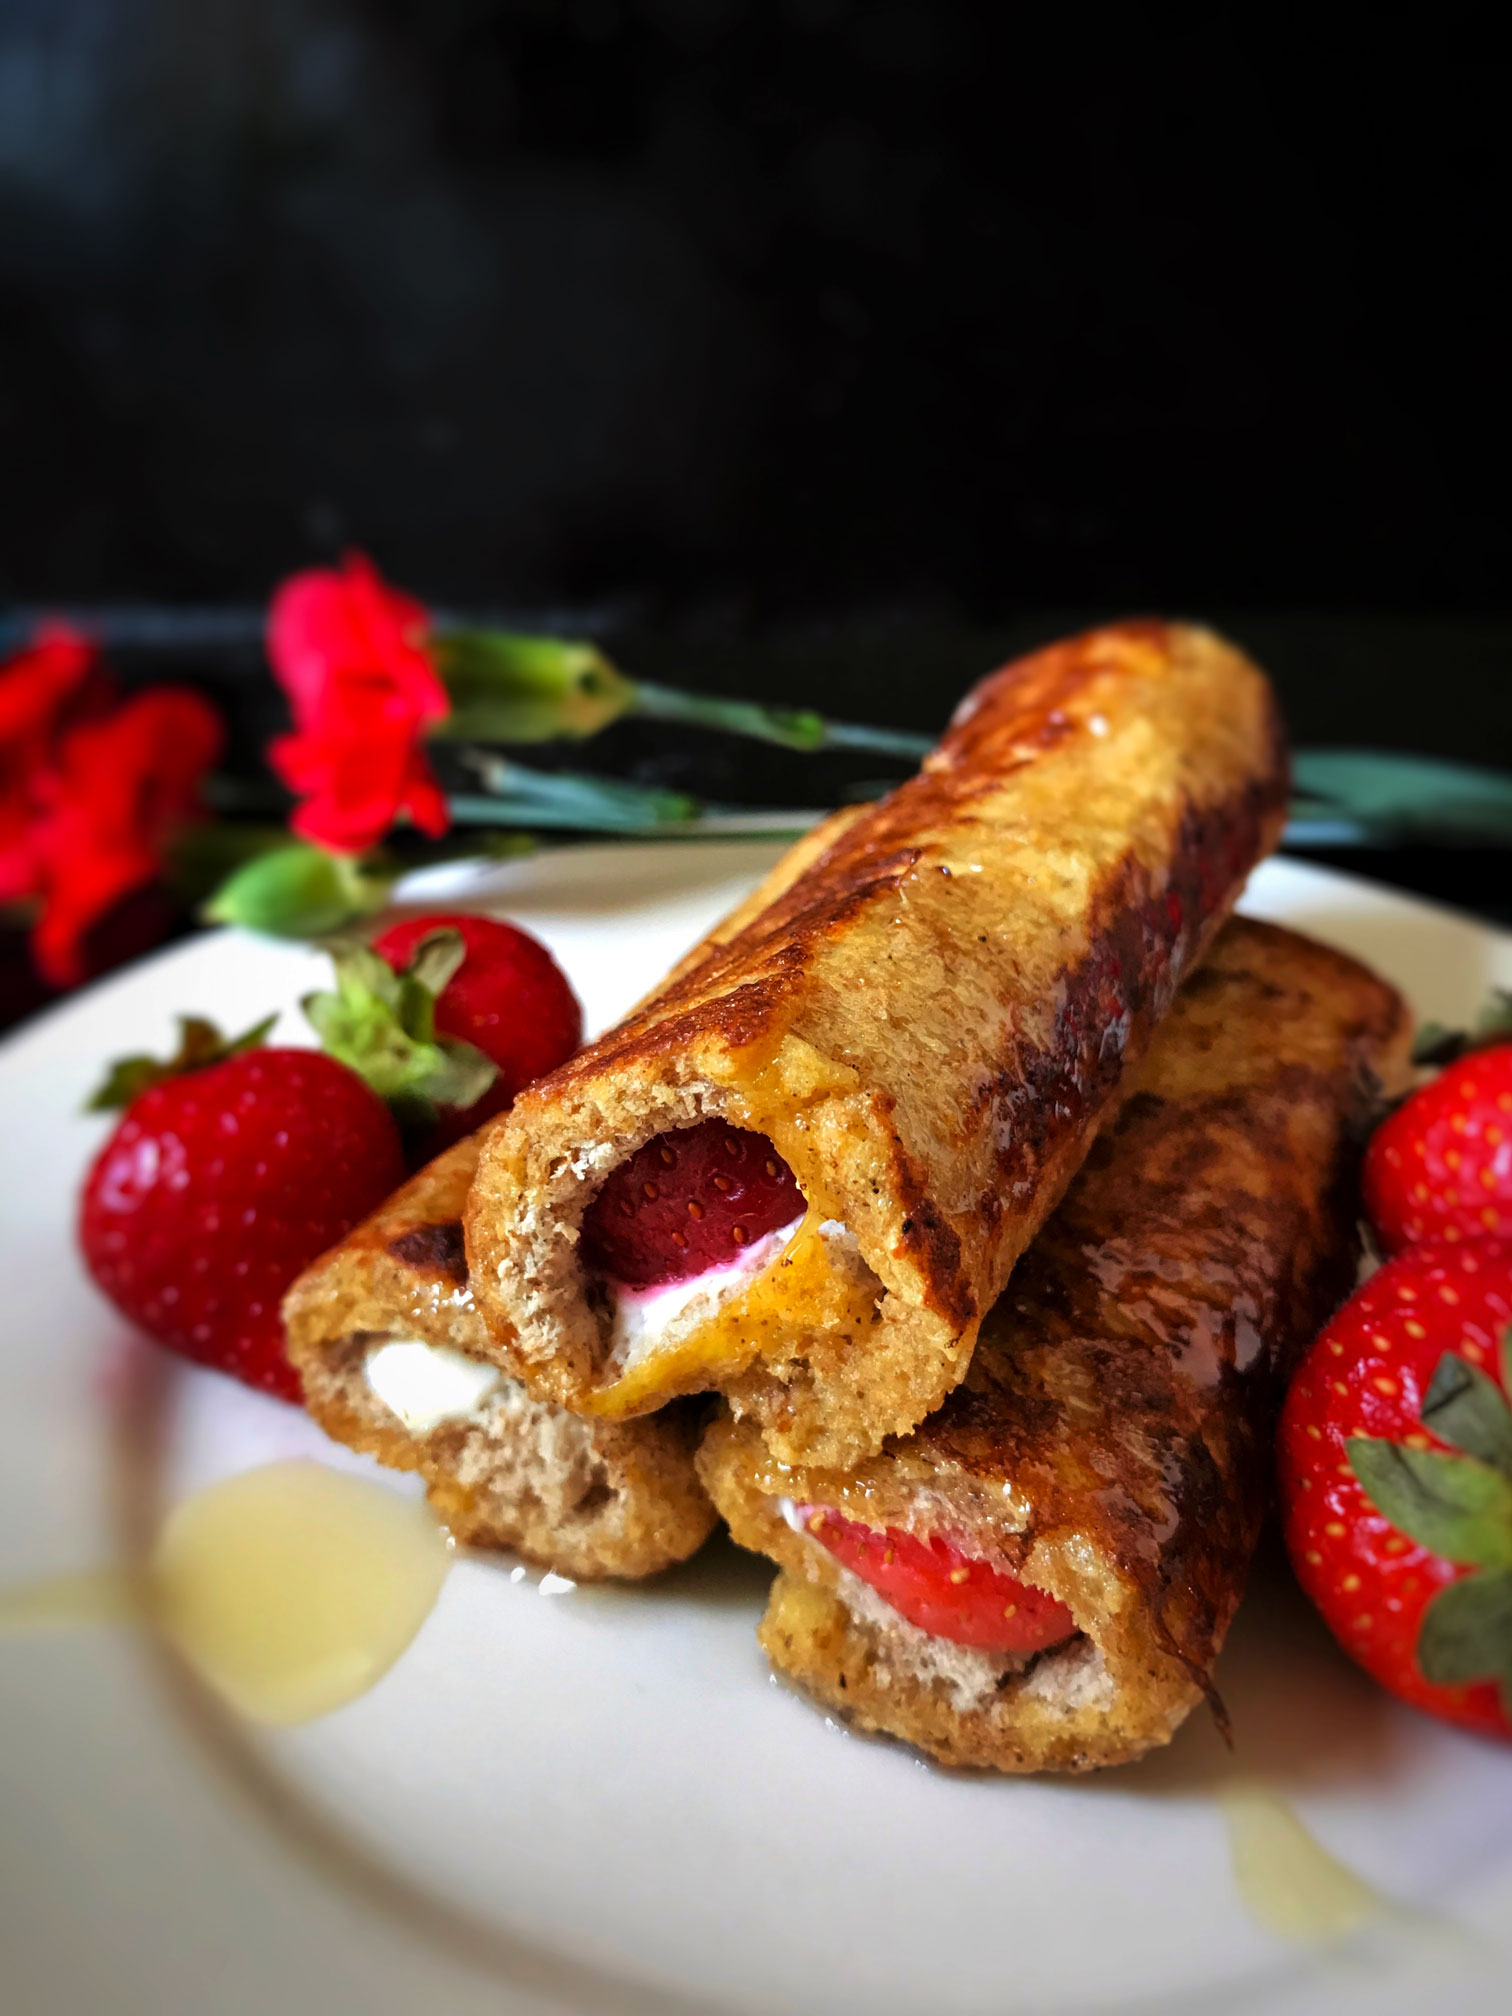 French toast rolls filled with cream cheese and strawberries